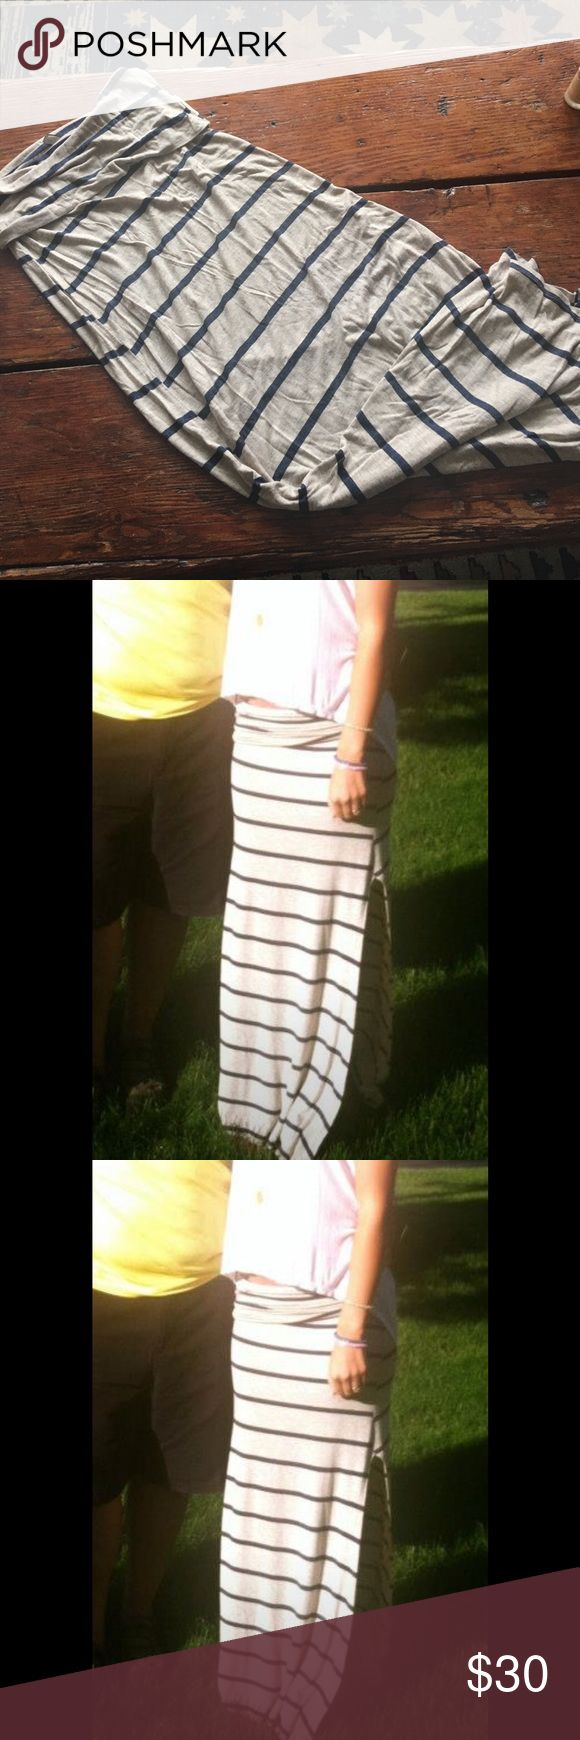 Elan striped maxi skirt Elam cream and navy stripped maxi skirt with side slit ! So soft and comfy! Only worn twice. Free People Skirts Maxi